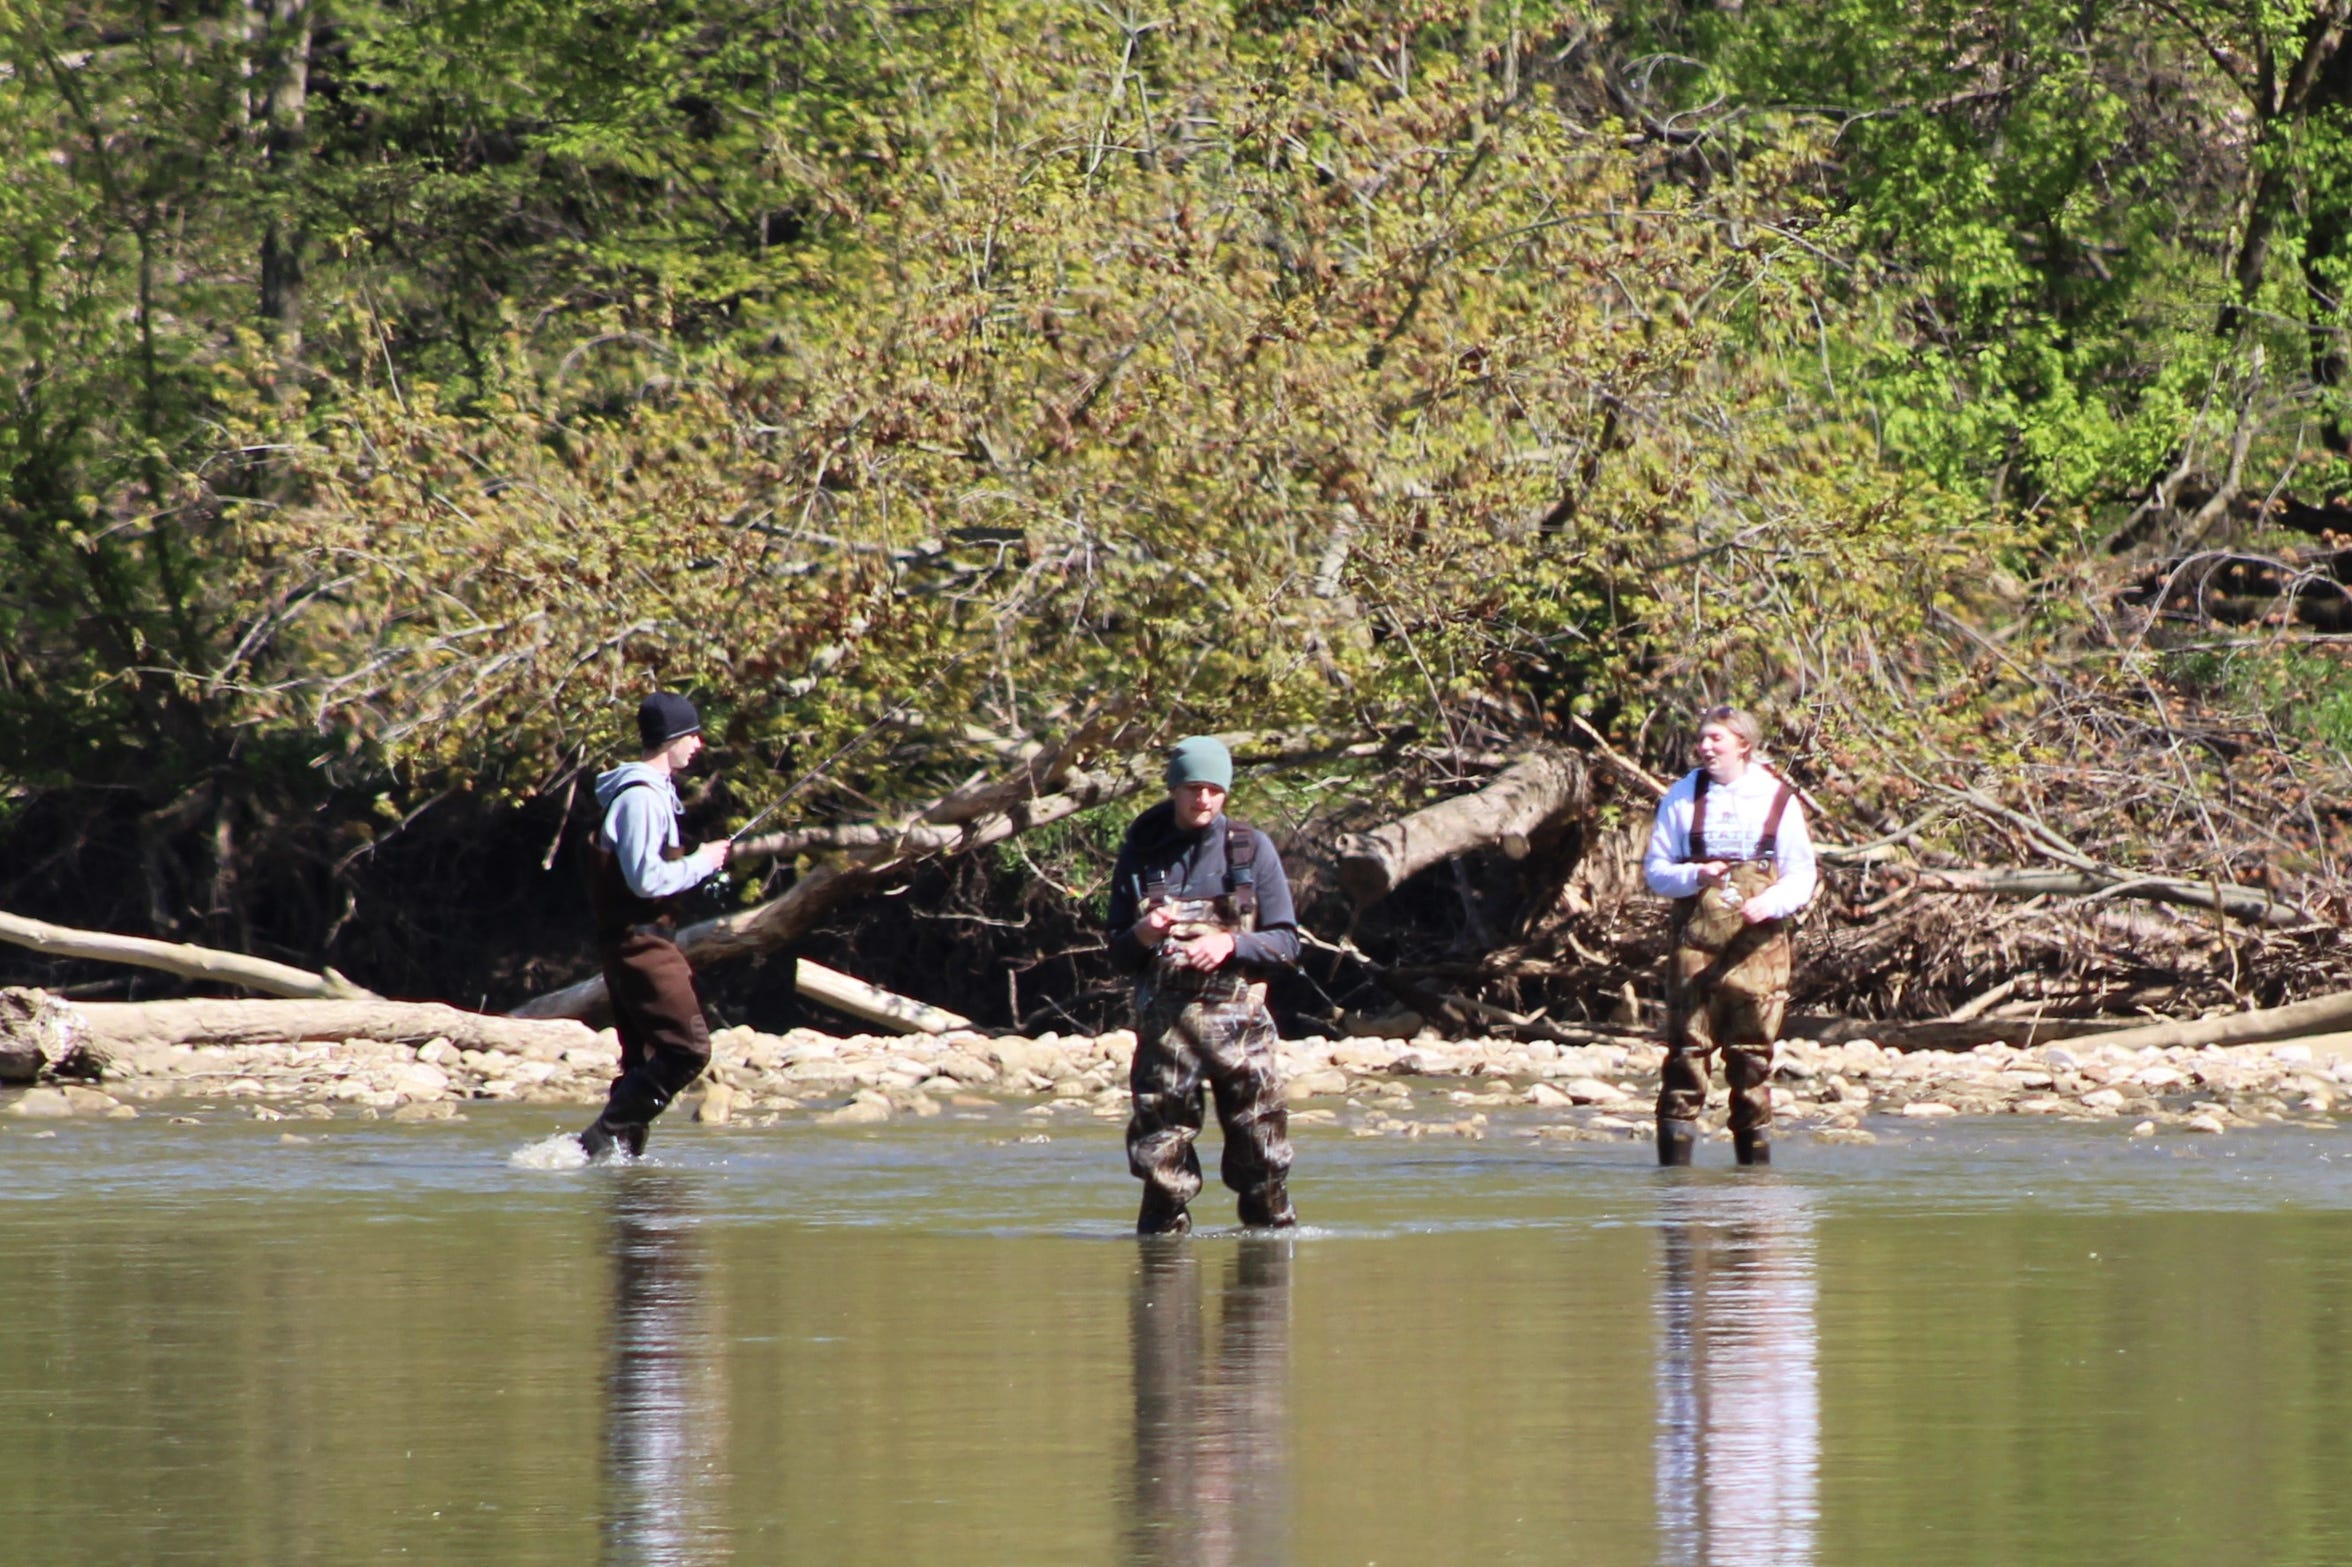 Three fishermen venture out from a rocky area and wade into the Sandusky River Wednesday near River Cliff Park. With the park reopened to vehicular traffic Tuesday after being closed for about a month, more fishermen showed up to take part in the river's annual white bass run.